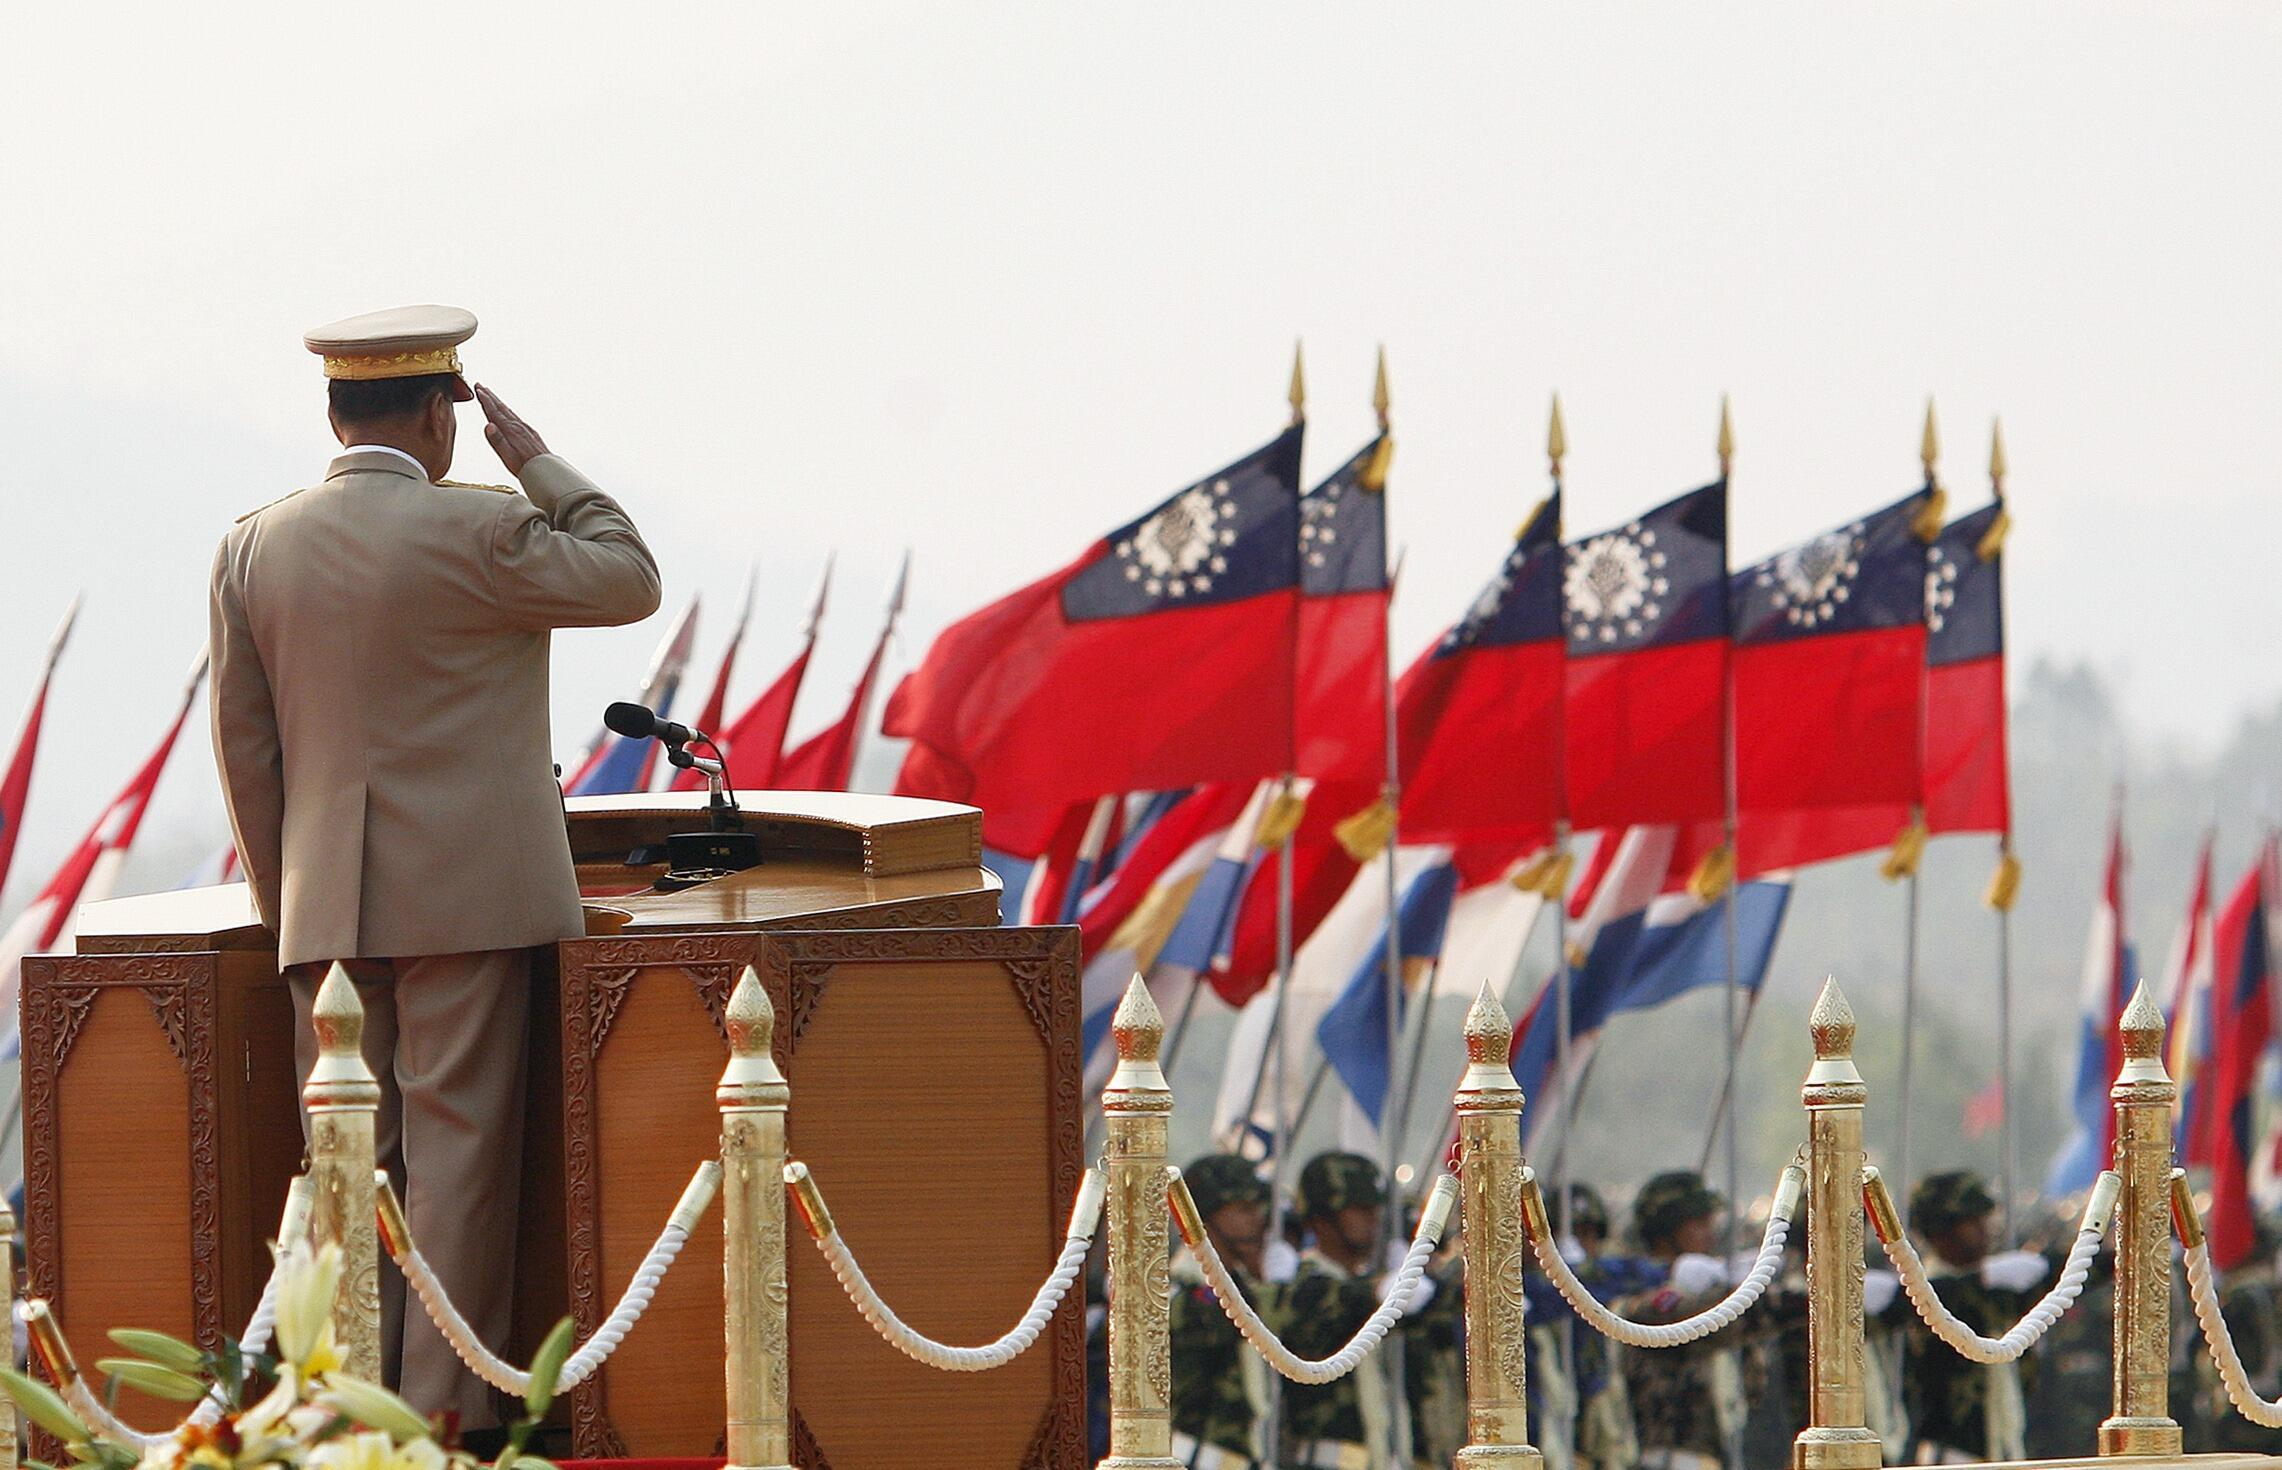 Myanmar's junta supremo Senior General Than Shwe salutes during the Armed Forces Day parade in Myanmar's capital Naypyidaw